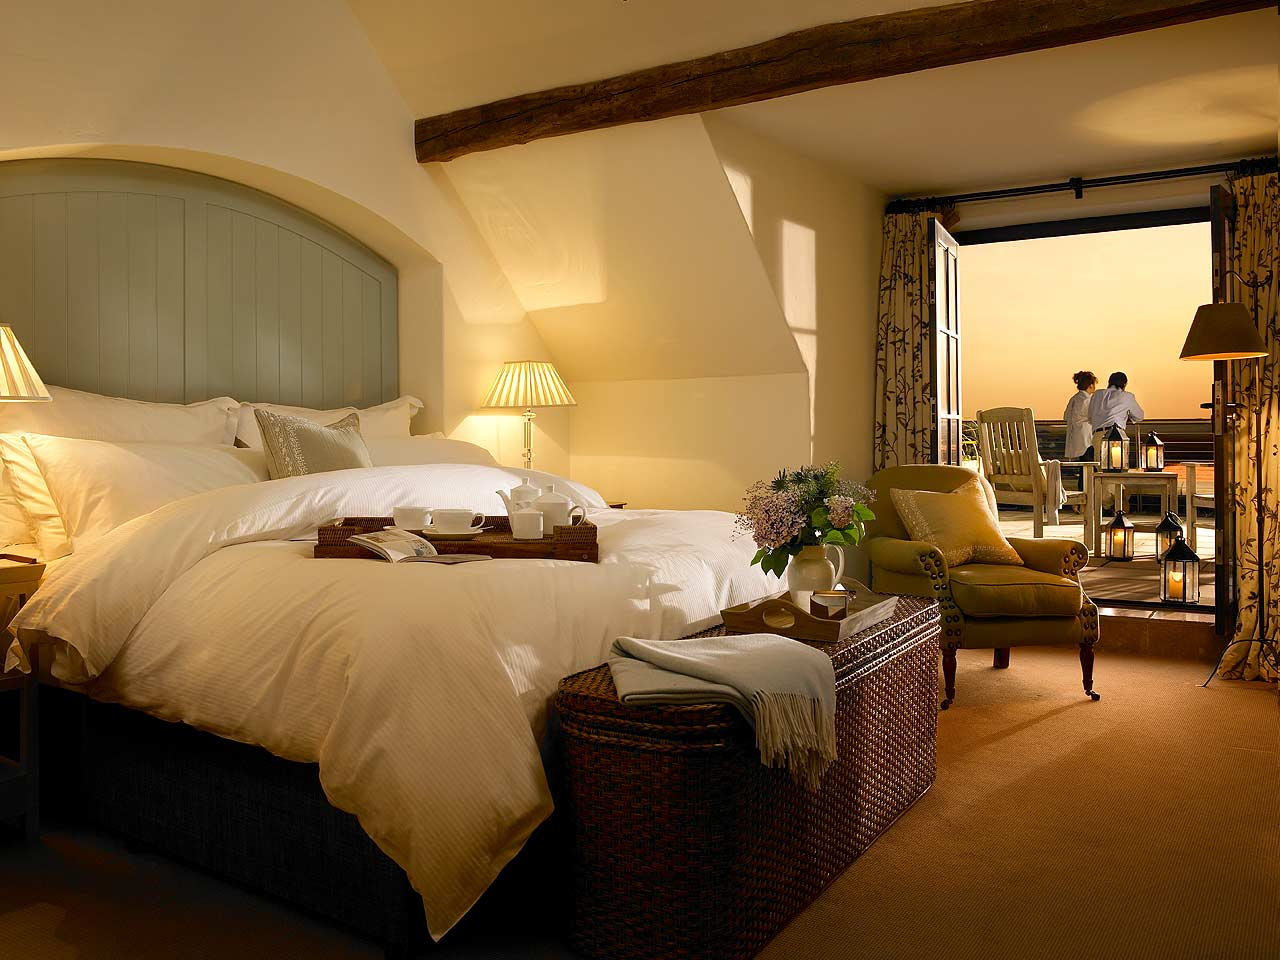 Lodge at doonbeg county clare ireland luxandtravel for 5 star luxury hotels